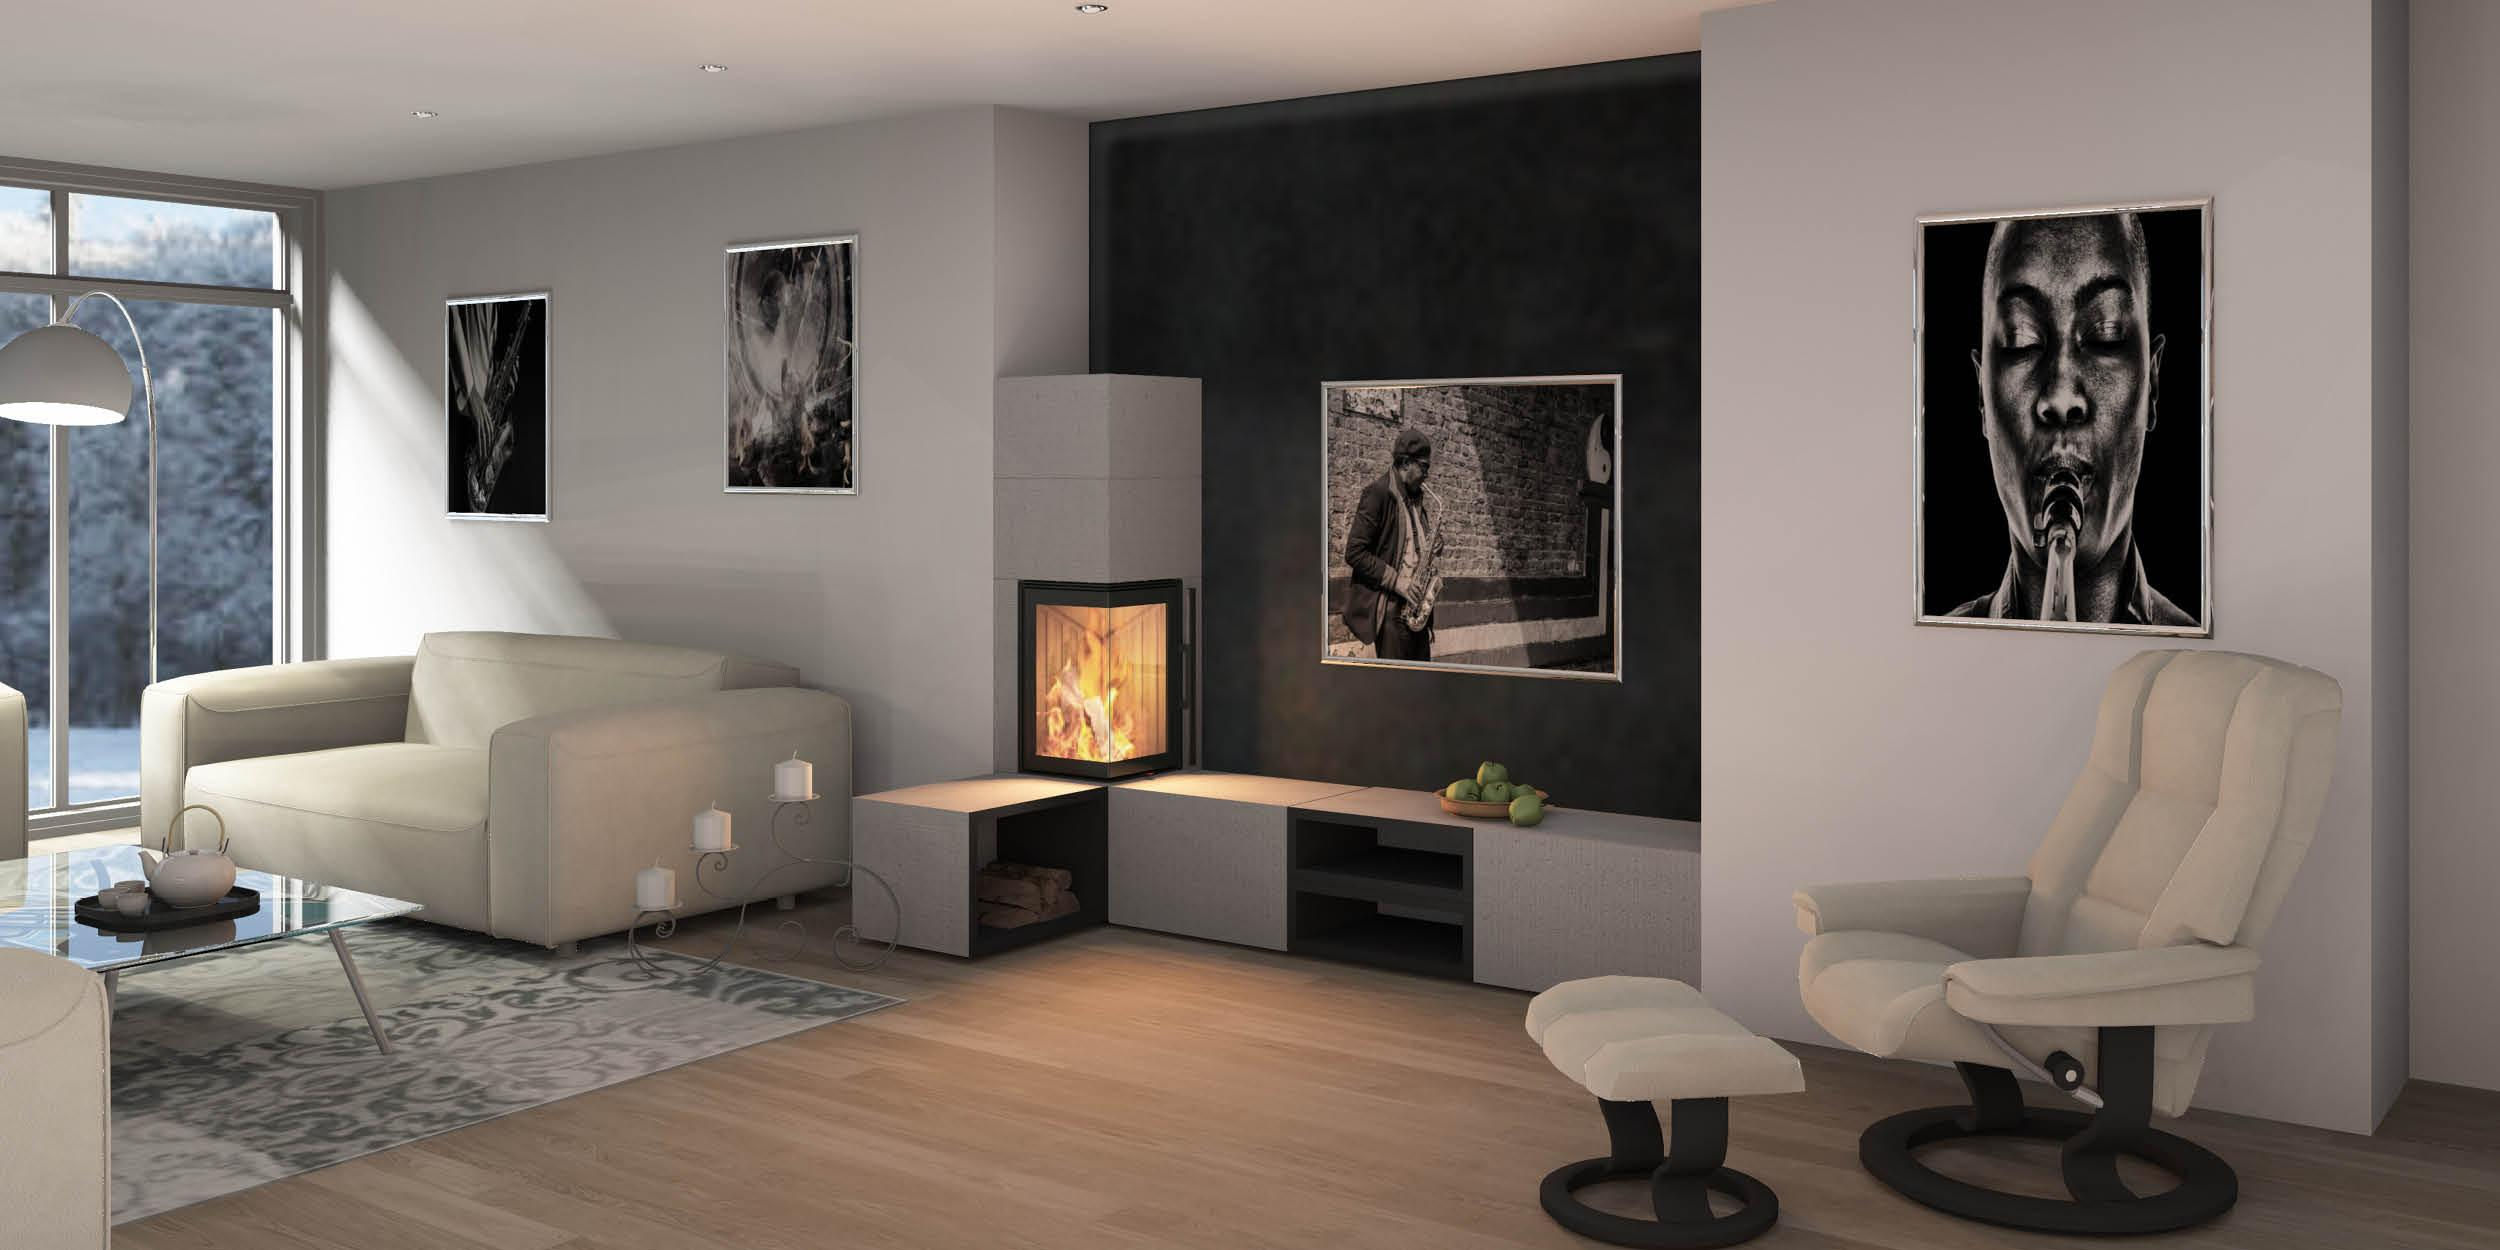 wohnlandschaft tolle wohnideen und tipps aus der couch community. Black Bedroom Furniture Sets. Home Design Ideas